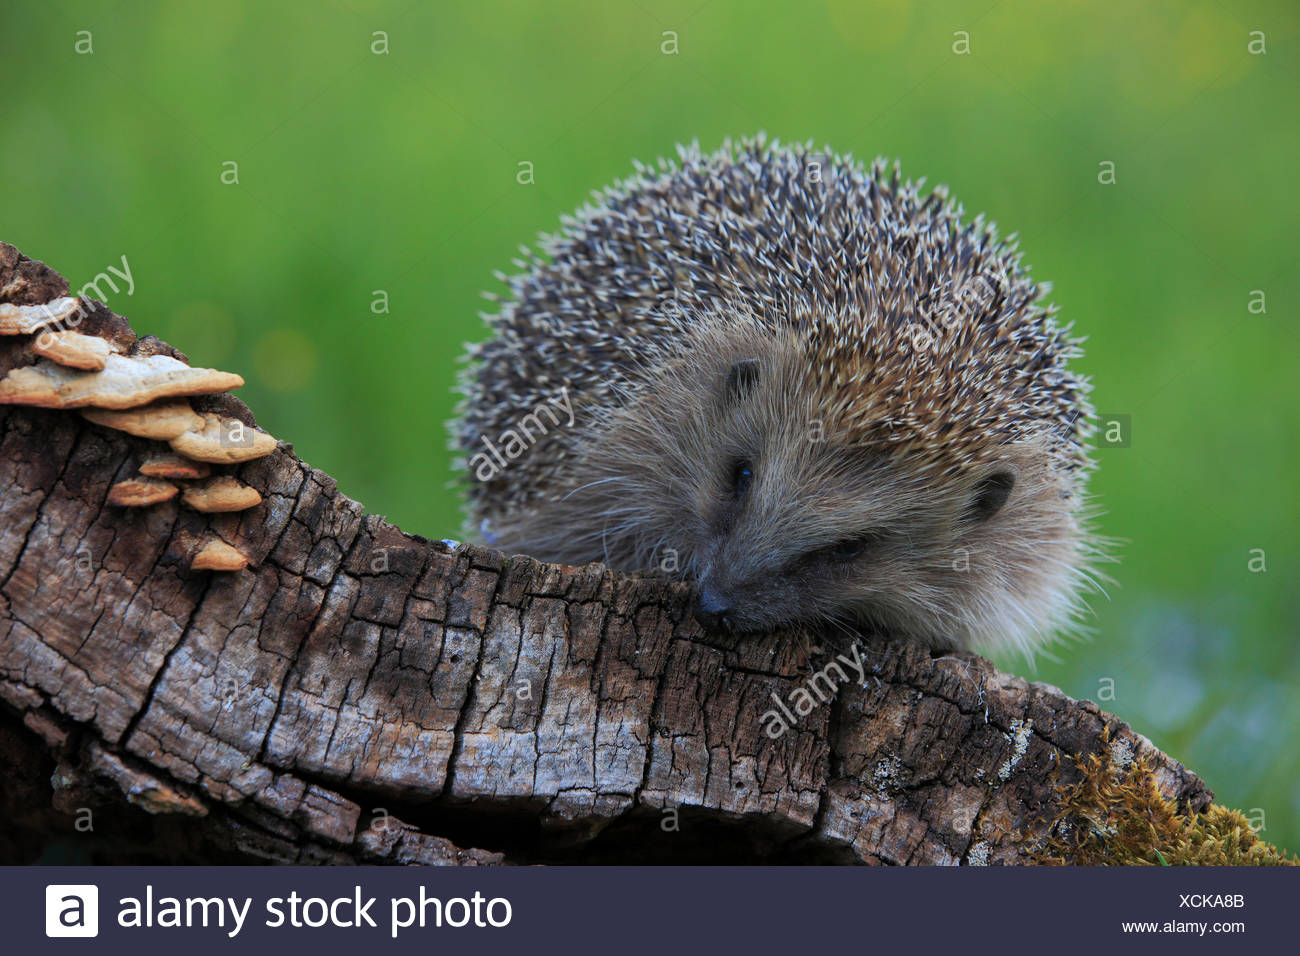 Tree stump, common hedgehog, Erinaceus europaeus, European hedgehog, spring, wood, hedgehog, insectivore, Switzerland, stings, p - Stock Image